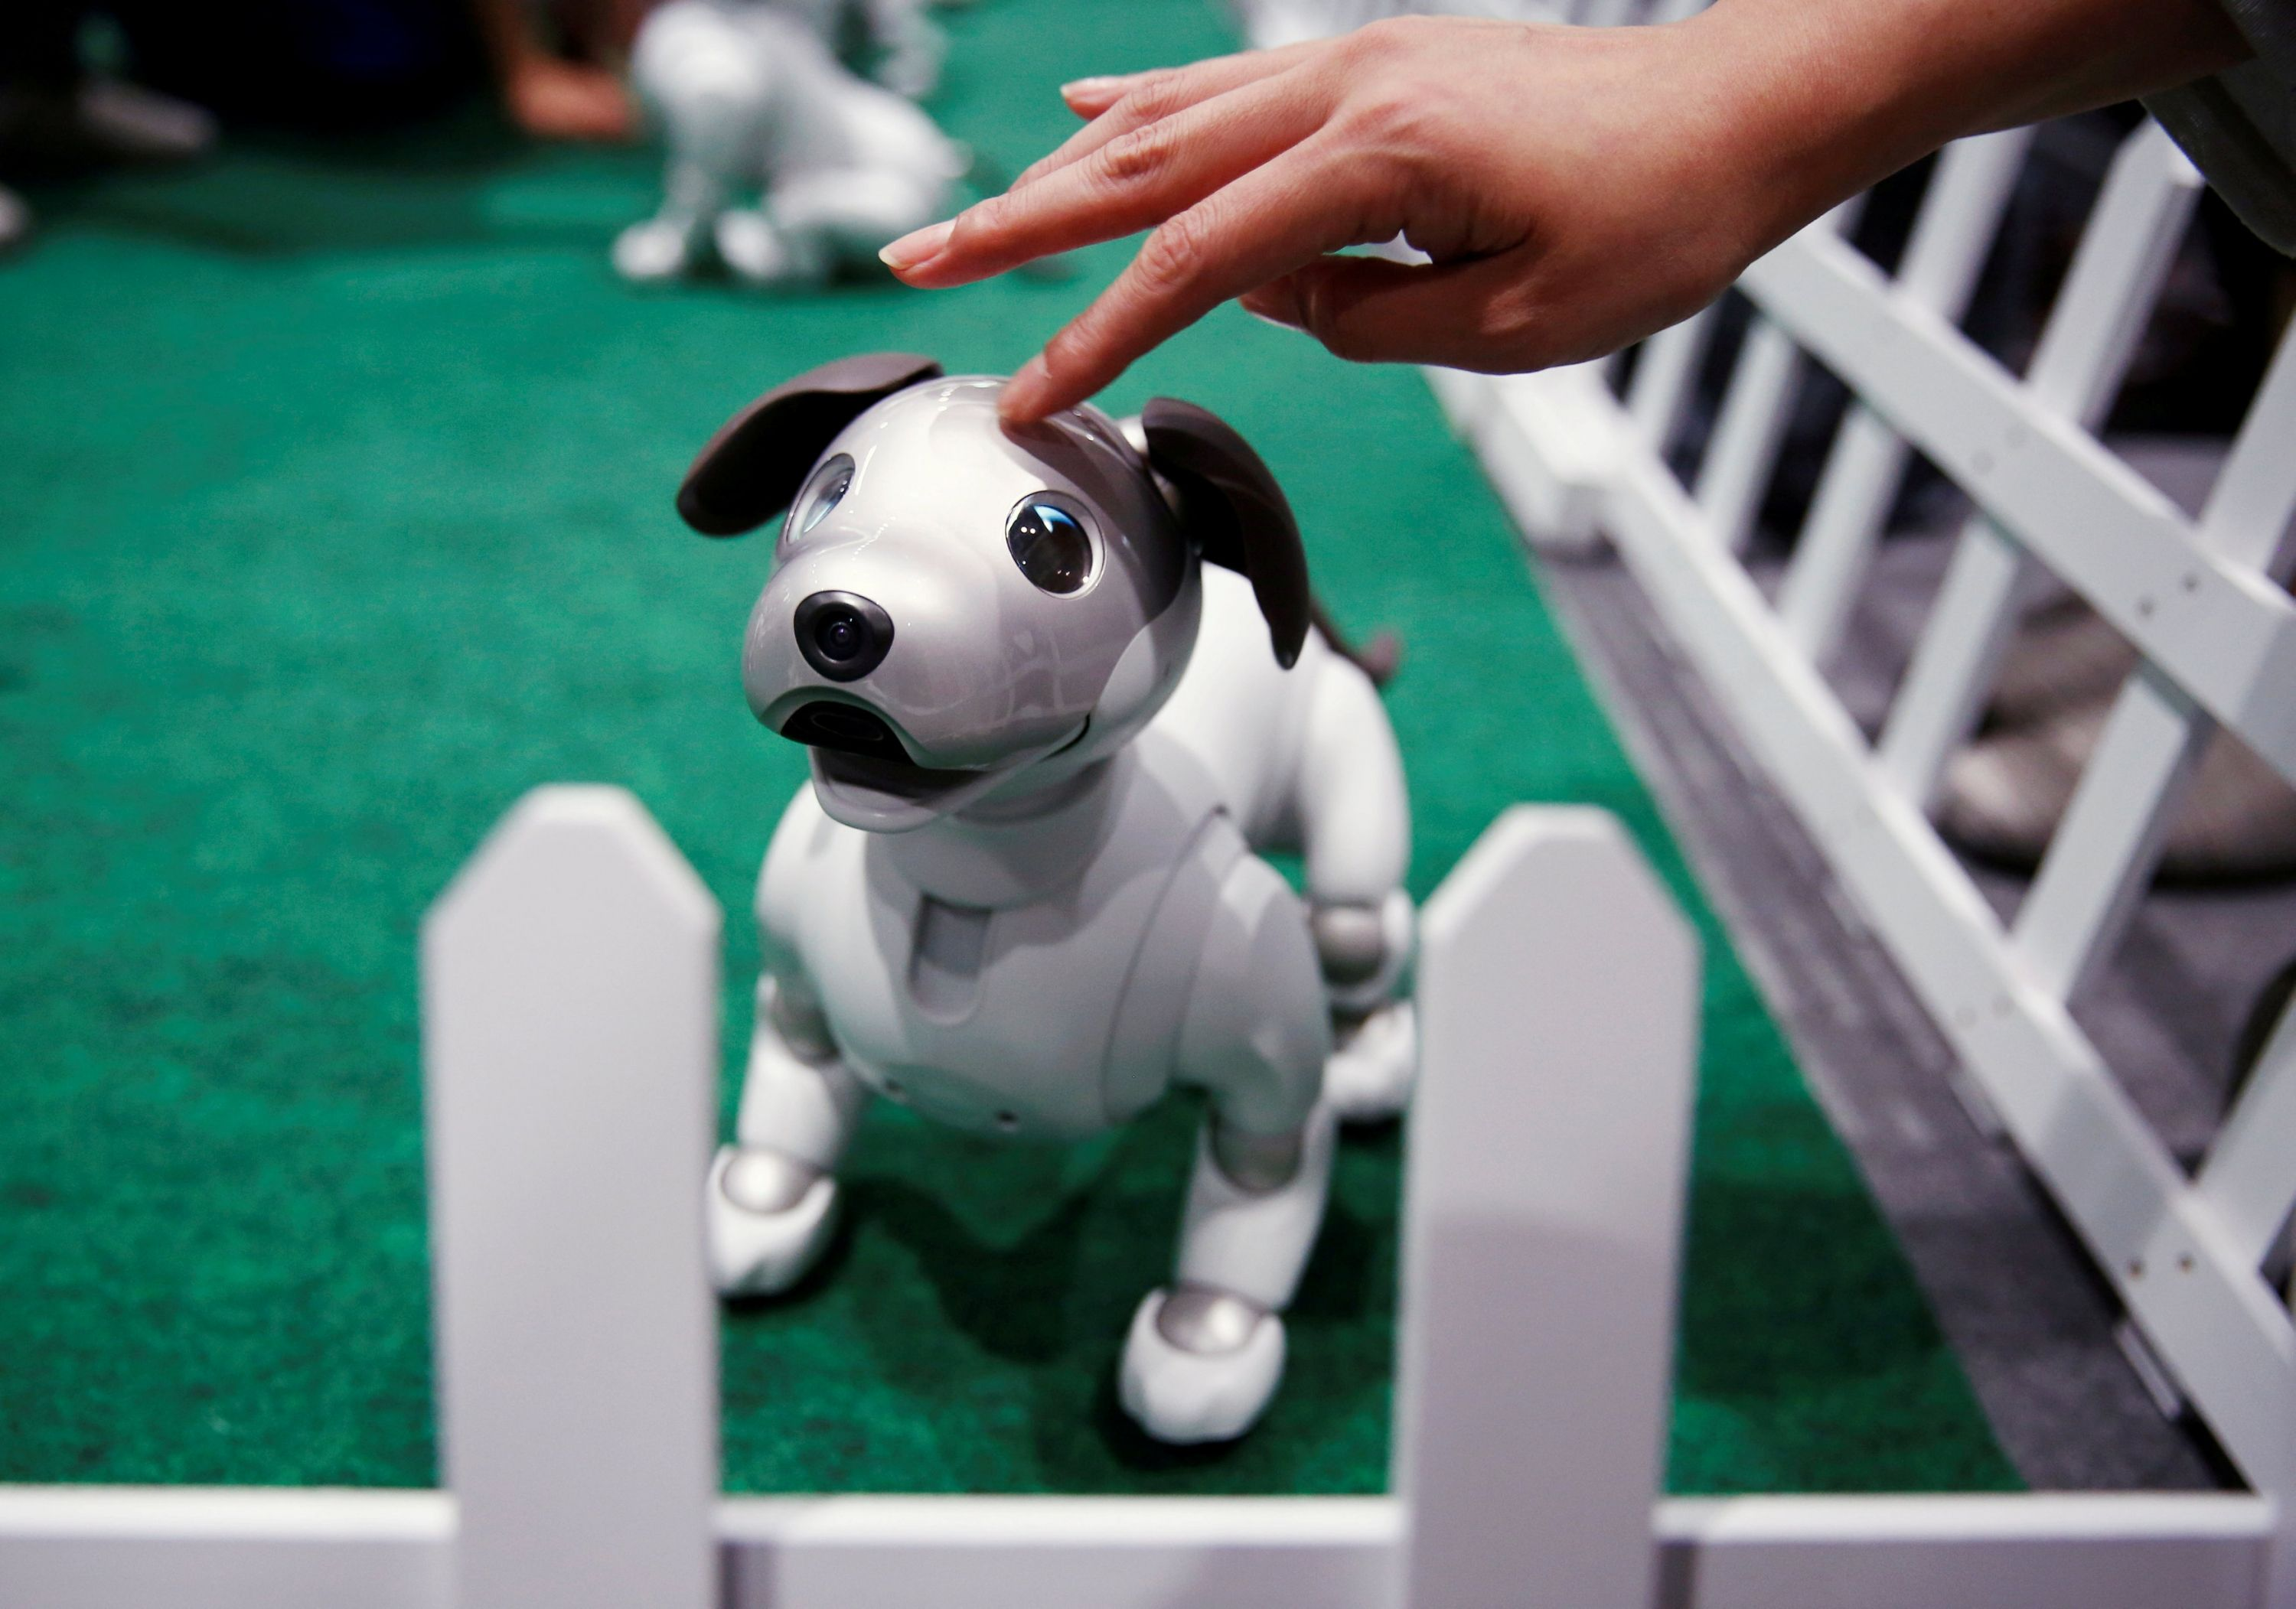 Aibo, the robot dog from Sony, comes for sale in the United